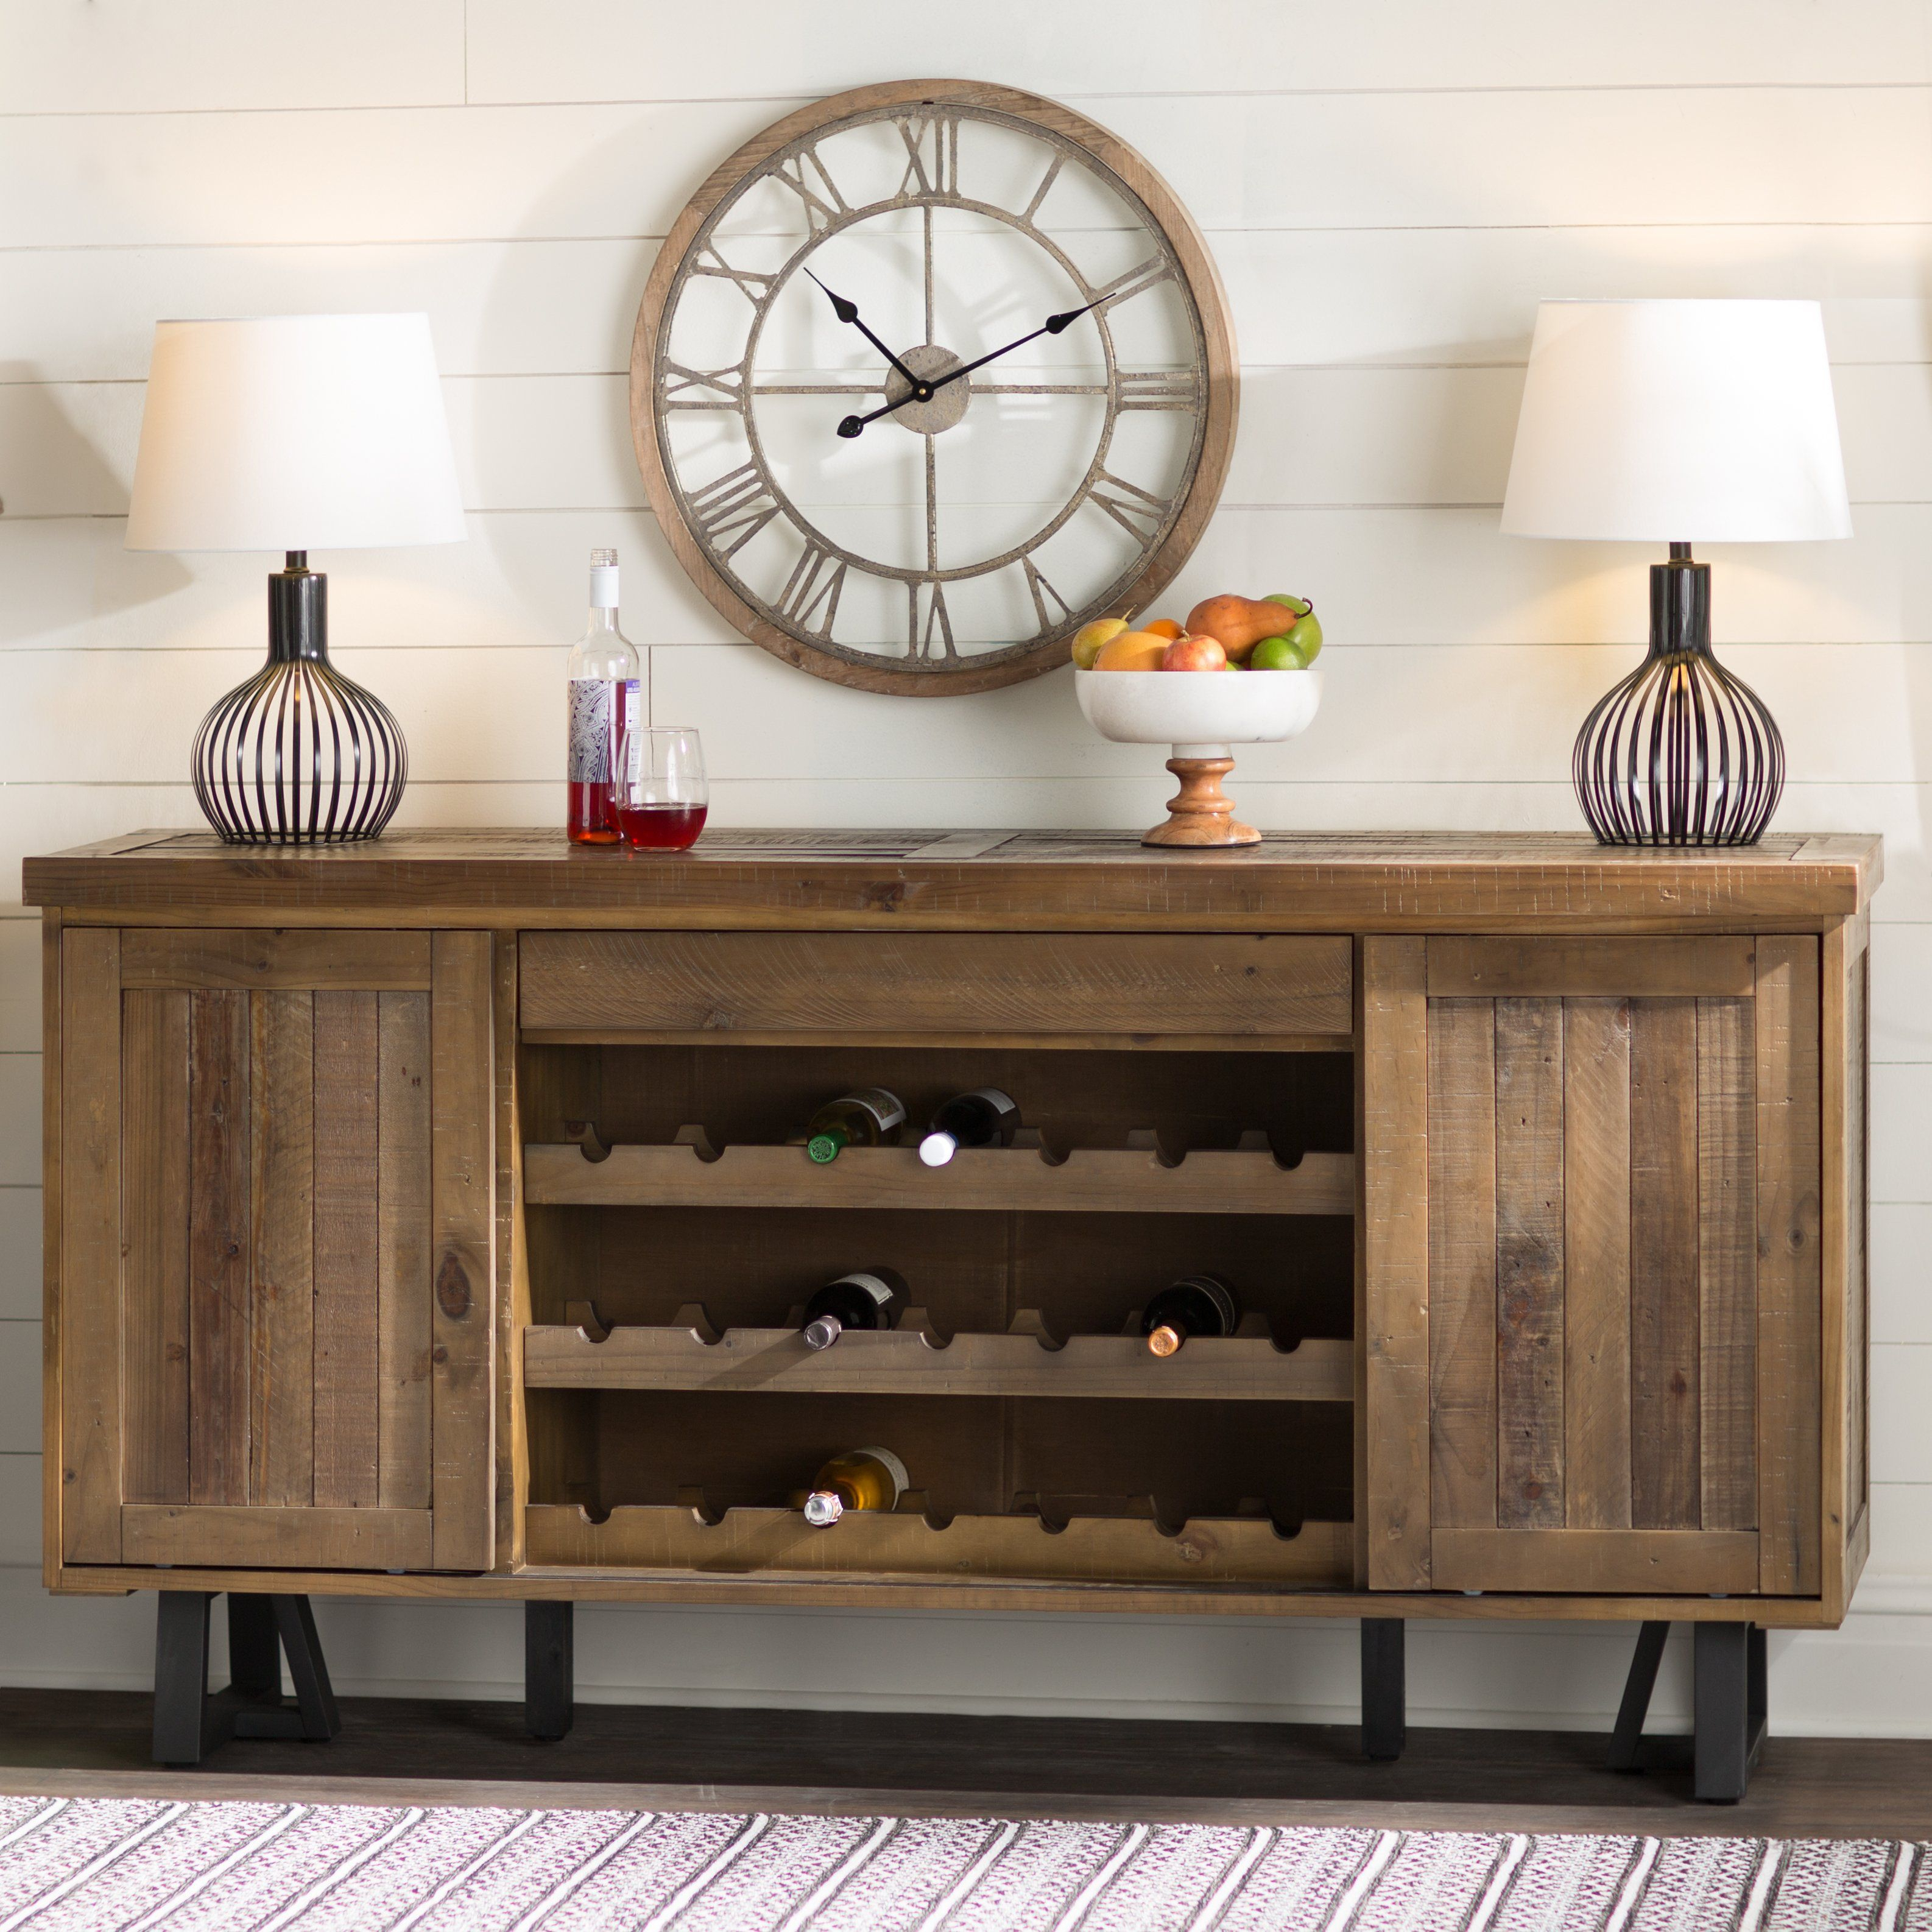 Laurel Foundry Modern Farmhouse Adell Credenza | Bellingham within Avenal Sideboards (Image 22 of 30)